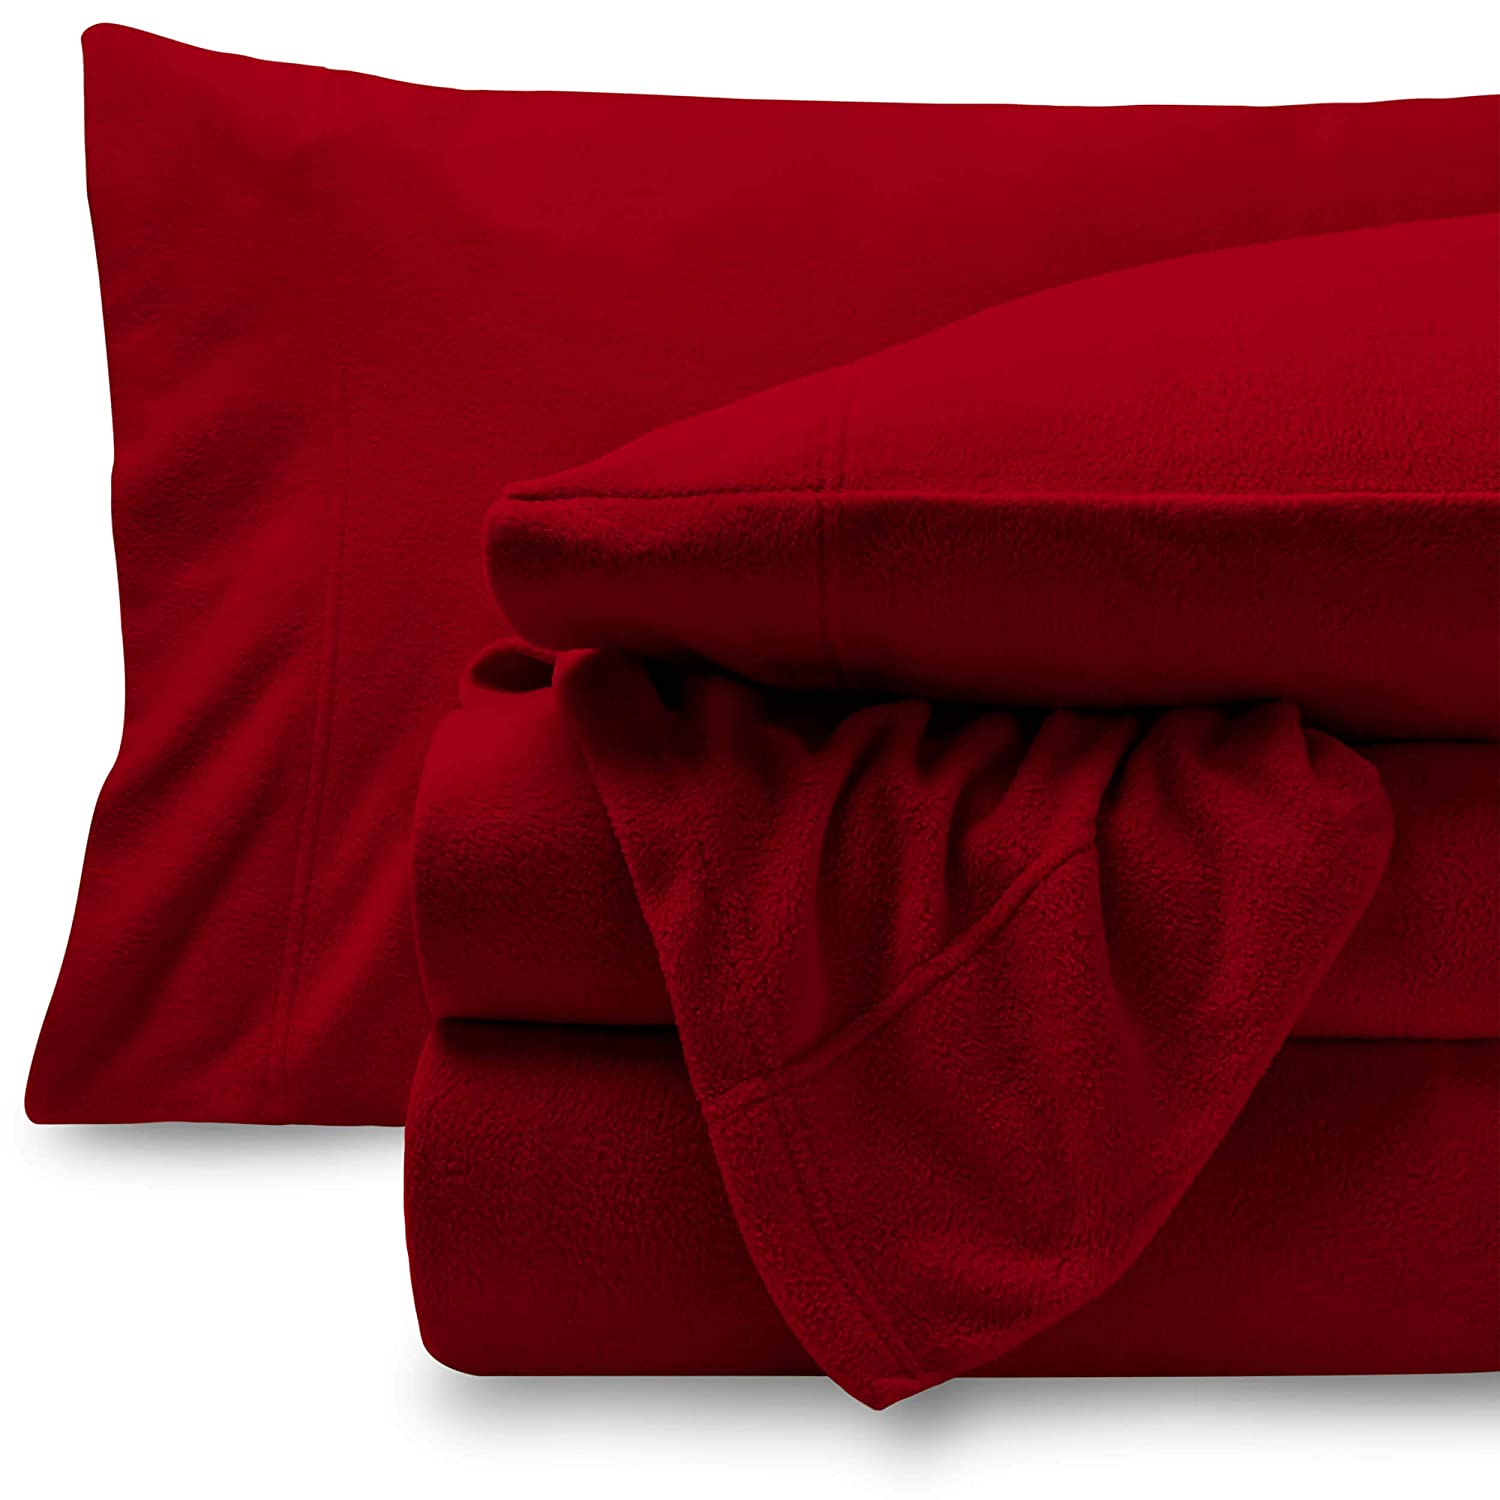 Bare Home Super Soft Fleece Sheet Set - Queen Size - Extra Plush Polar Fleece, Pill-Resistant Bed Sheets - All Season Cozy Warmth, Breathable & Hypoallergenic (Queen, Red)